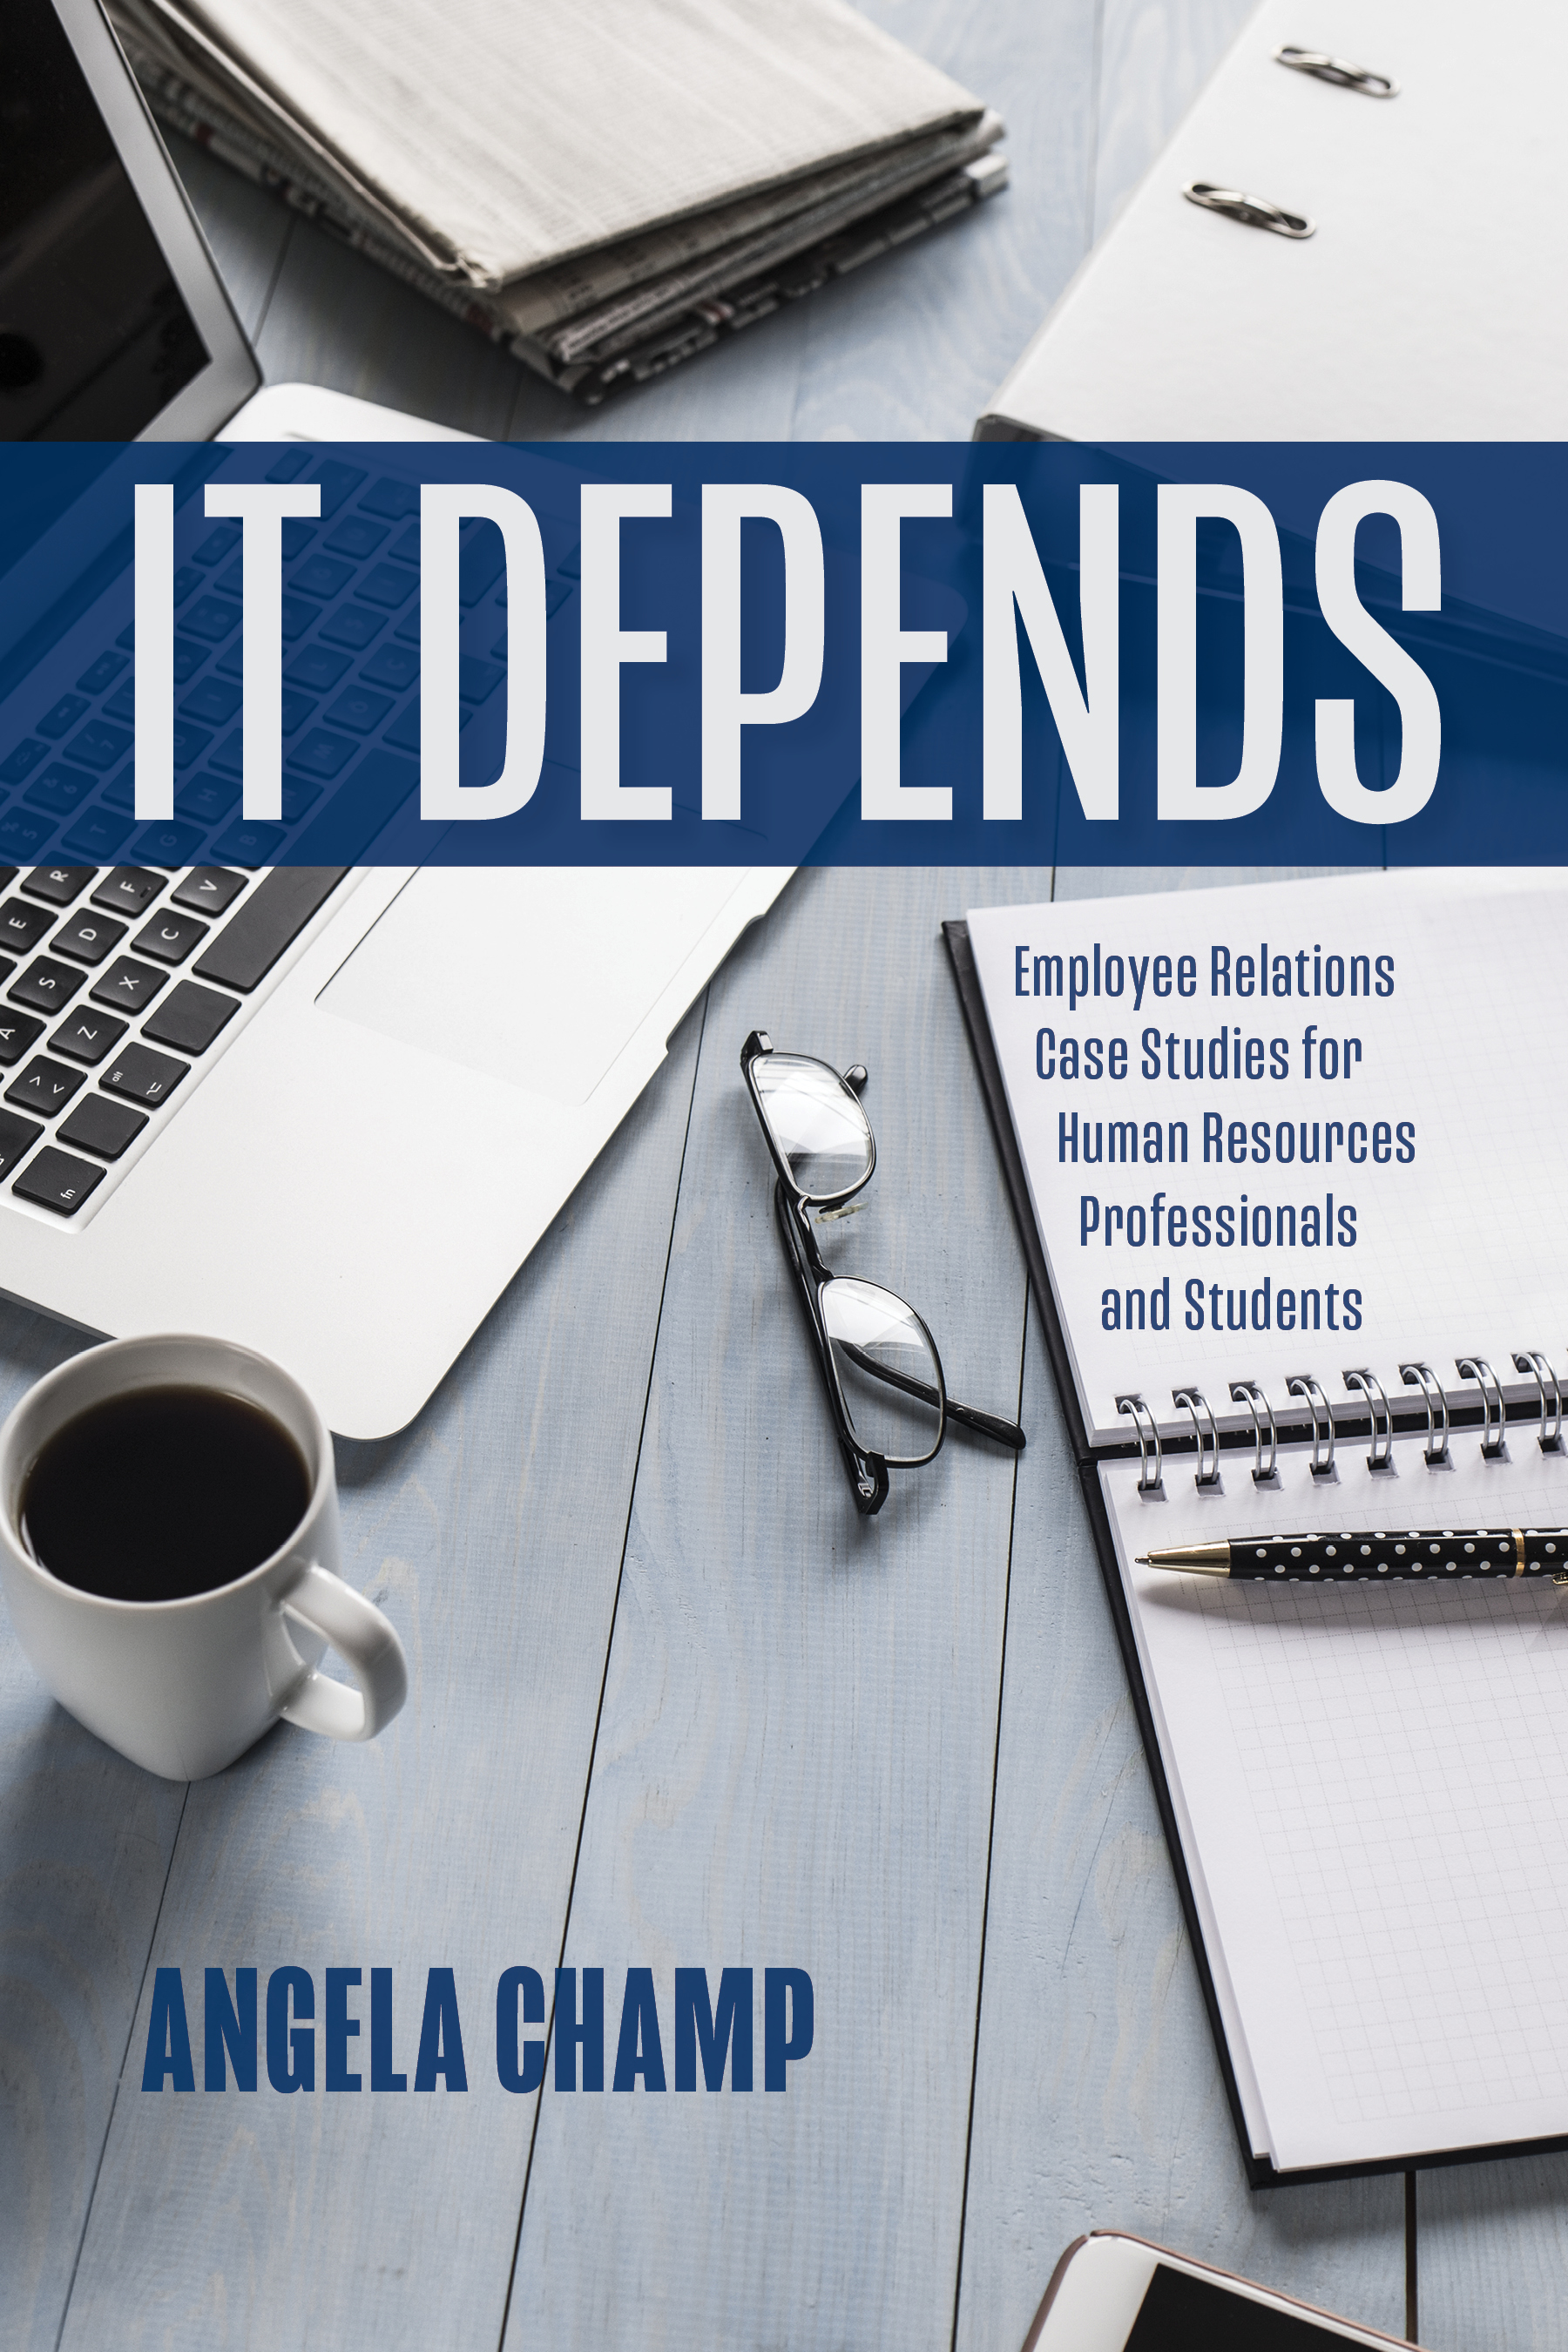 It Depends: Employee Relations Case Studies for Human Resources Students  and Professionals, an Ebook by Angela Champ